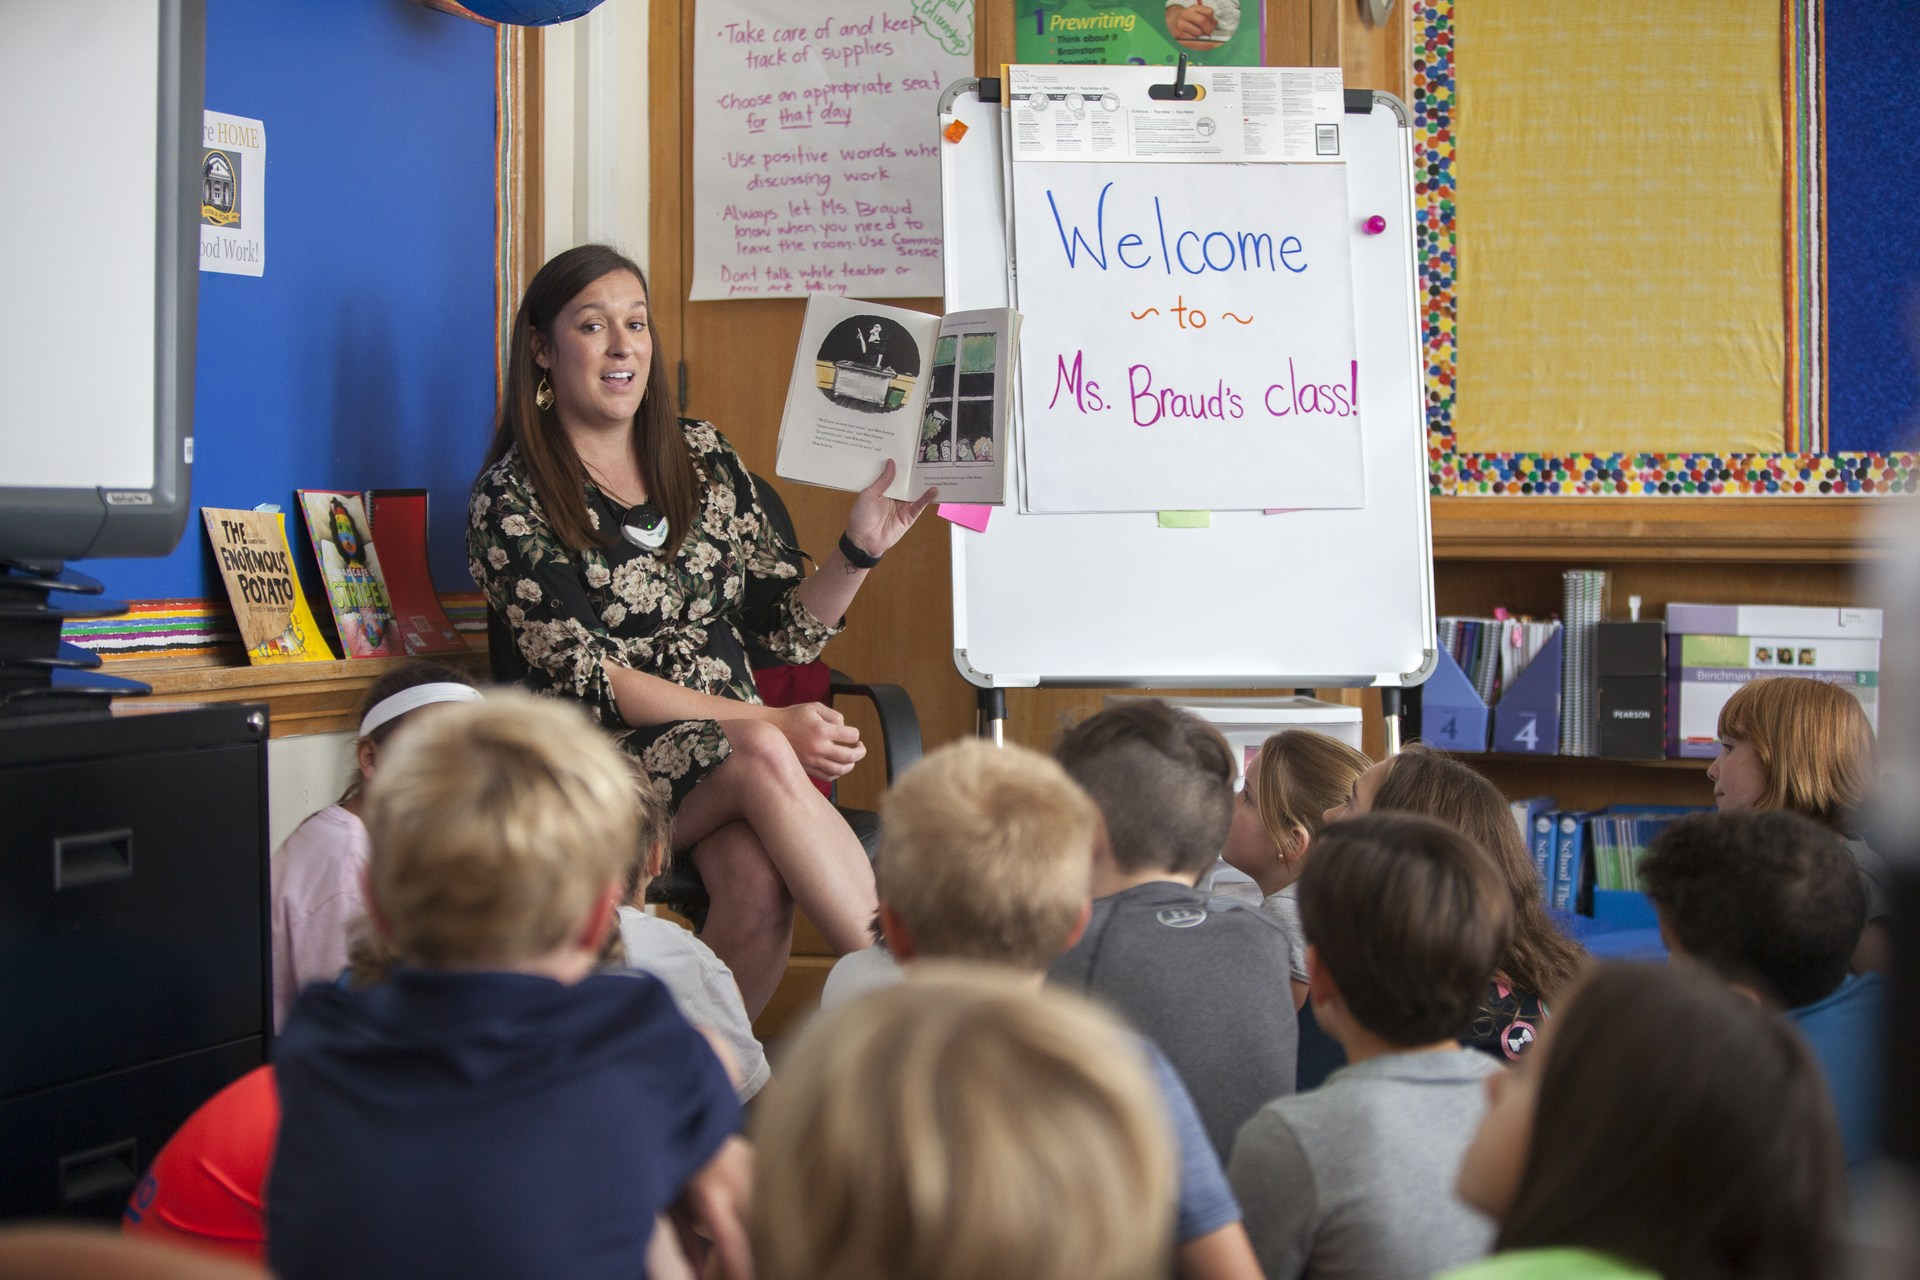 An elementary school teacher reads to her students in the classroom.